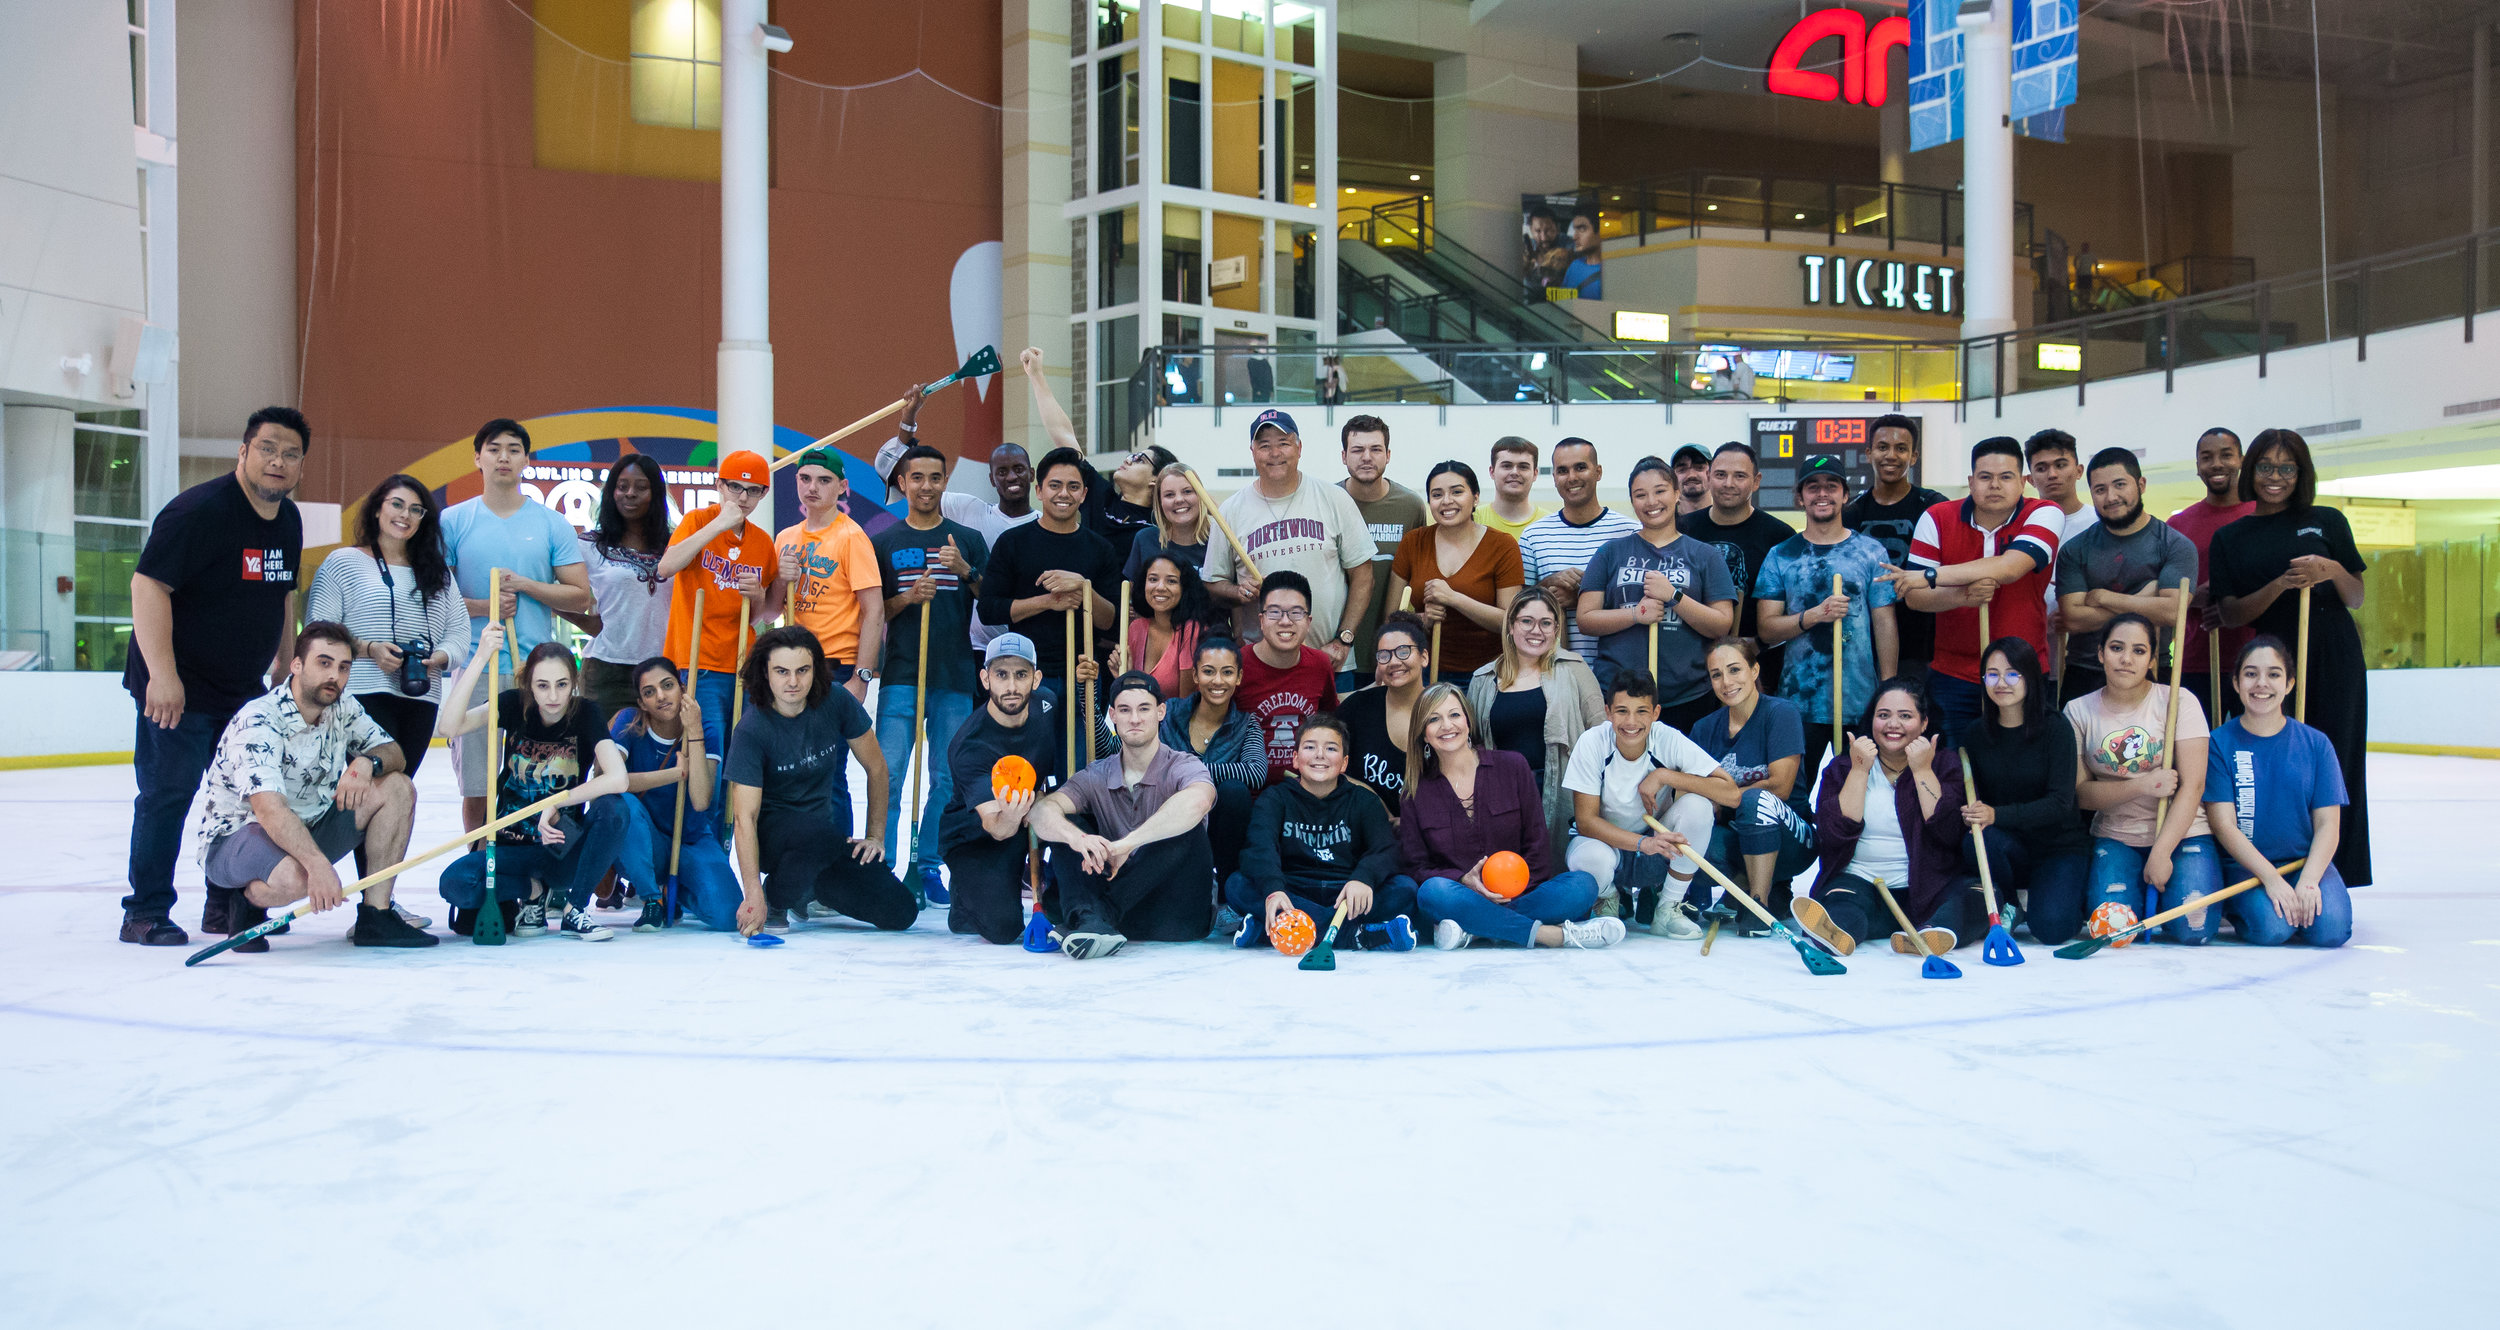 PAGE 22 - BROOMBALL ORIGINAL.jpg